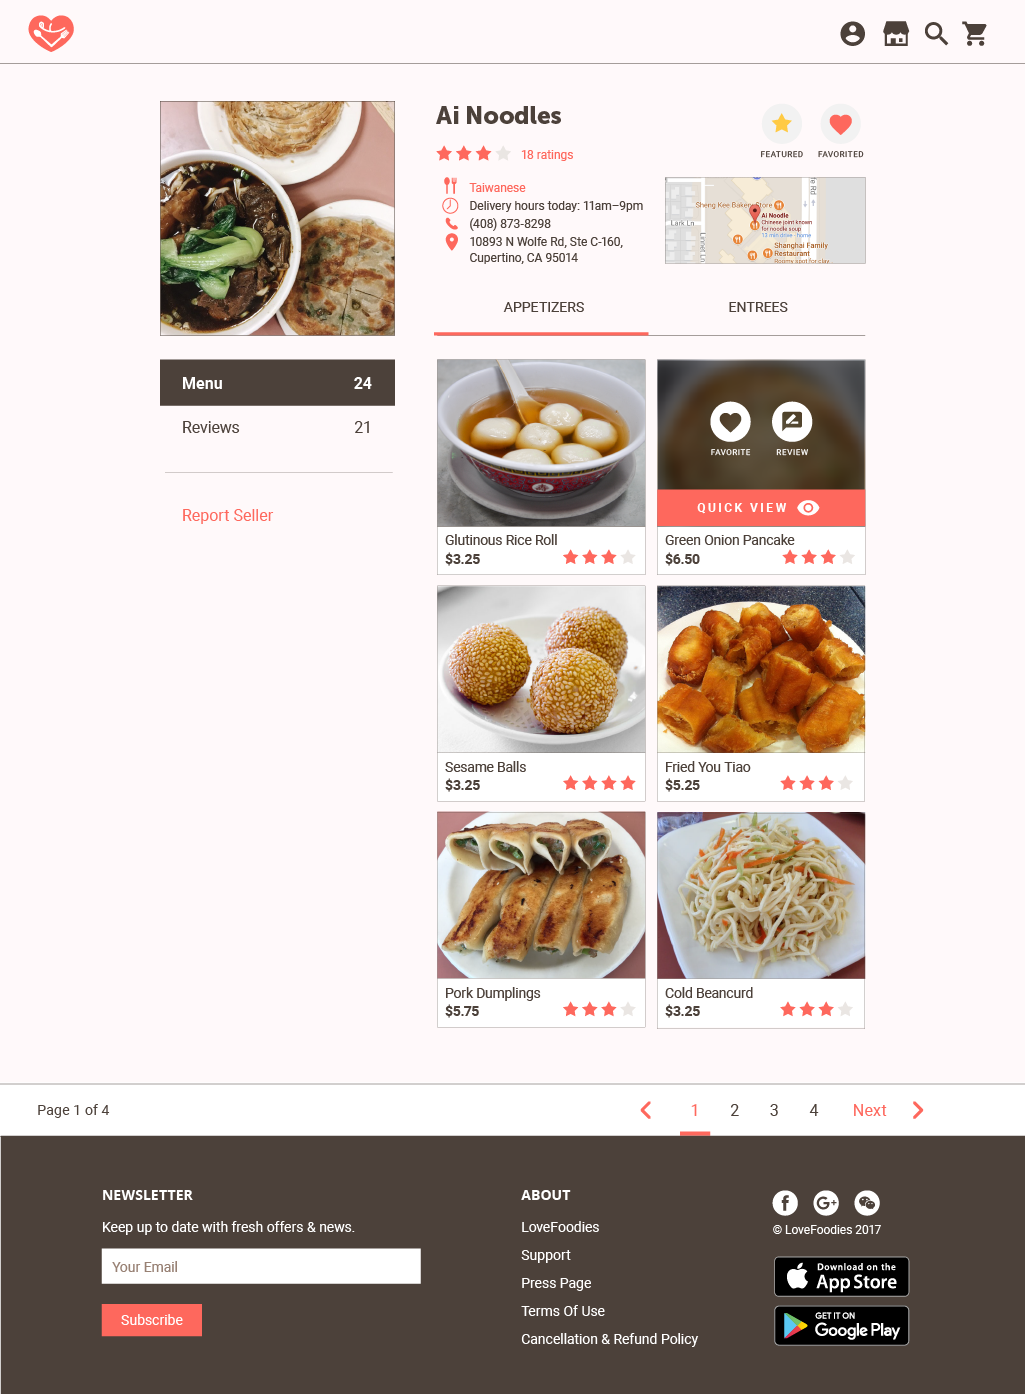 LoveFoodies-Website_Seller Store Page.png